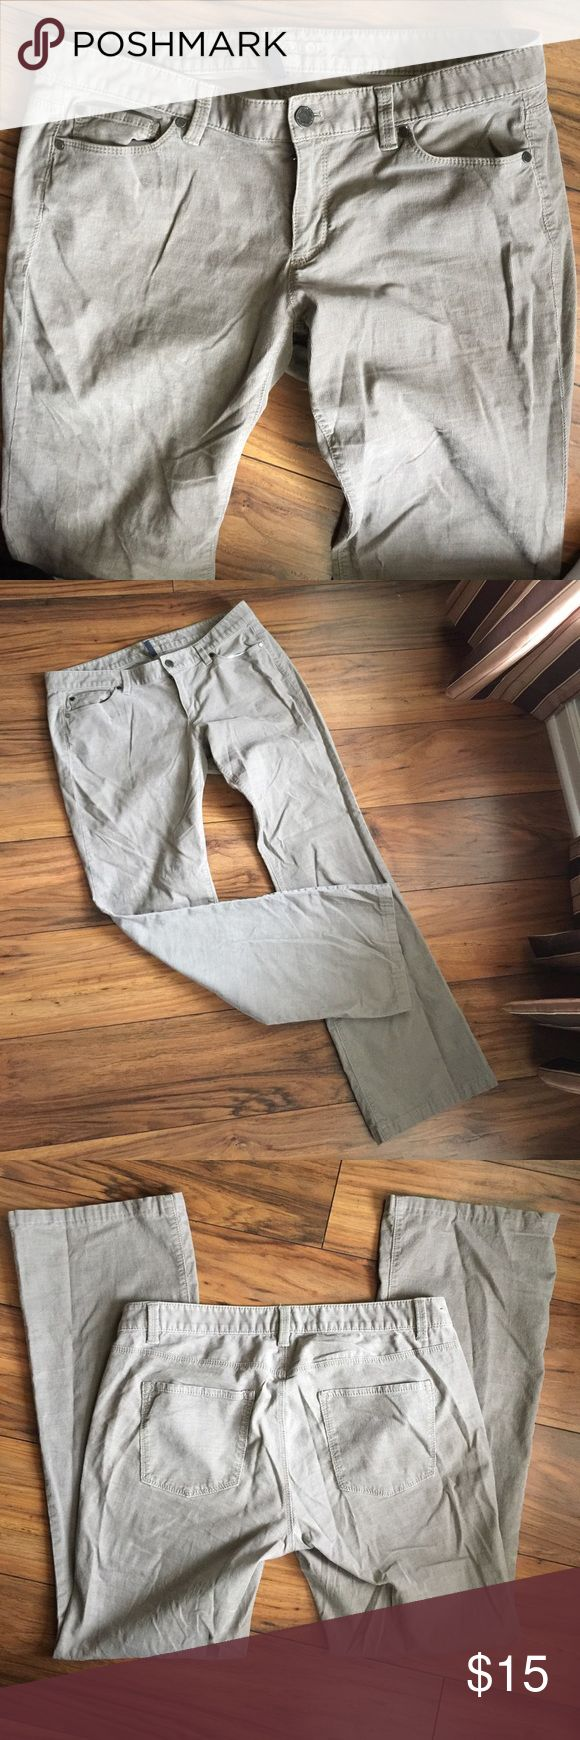 """Ann Taylor Corduroy Curvy jeans Perfect condition curvy corduroy jeans 95% cotton 5% spandex and 30"""" inseam Ann Taylor Jeans"""